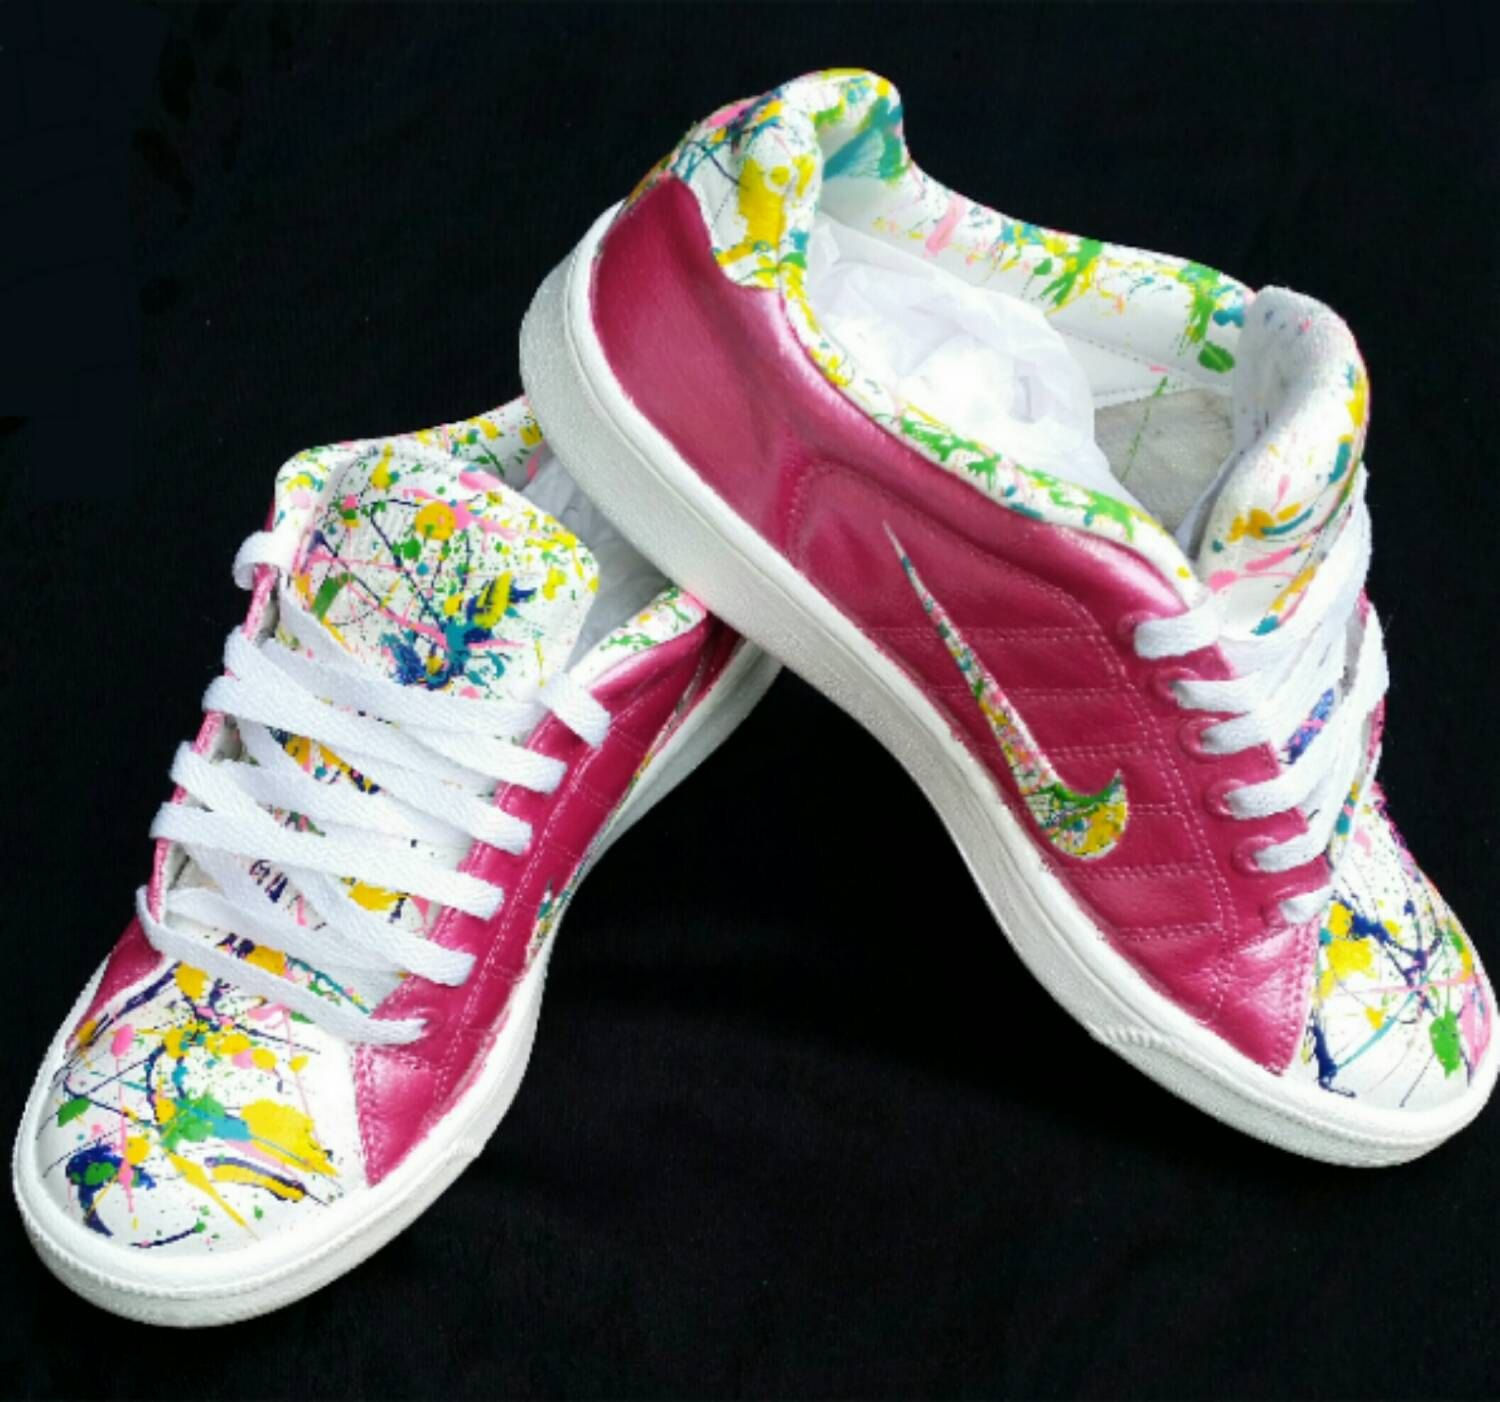 low priced 20d87 ba91b Custom Painted- Splatter Painted- Nike s- Air Force Ones- Tennis Shoes-  Unisex Shoes- Any Colors- Any Size- Babies- Toddlers- Kids- Adults by  DivineKidz on ...